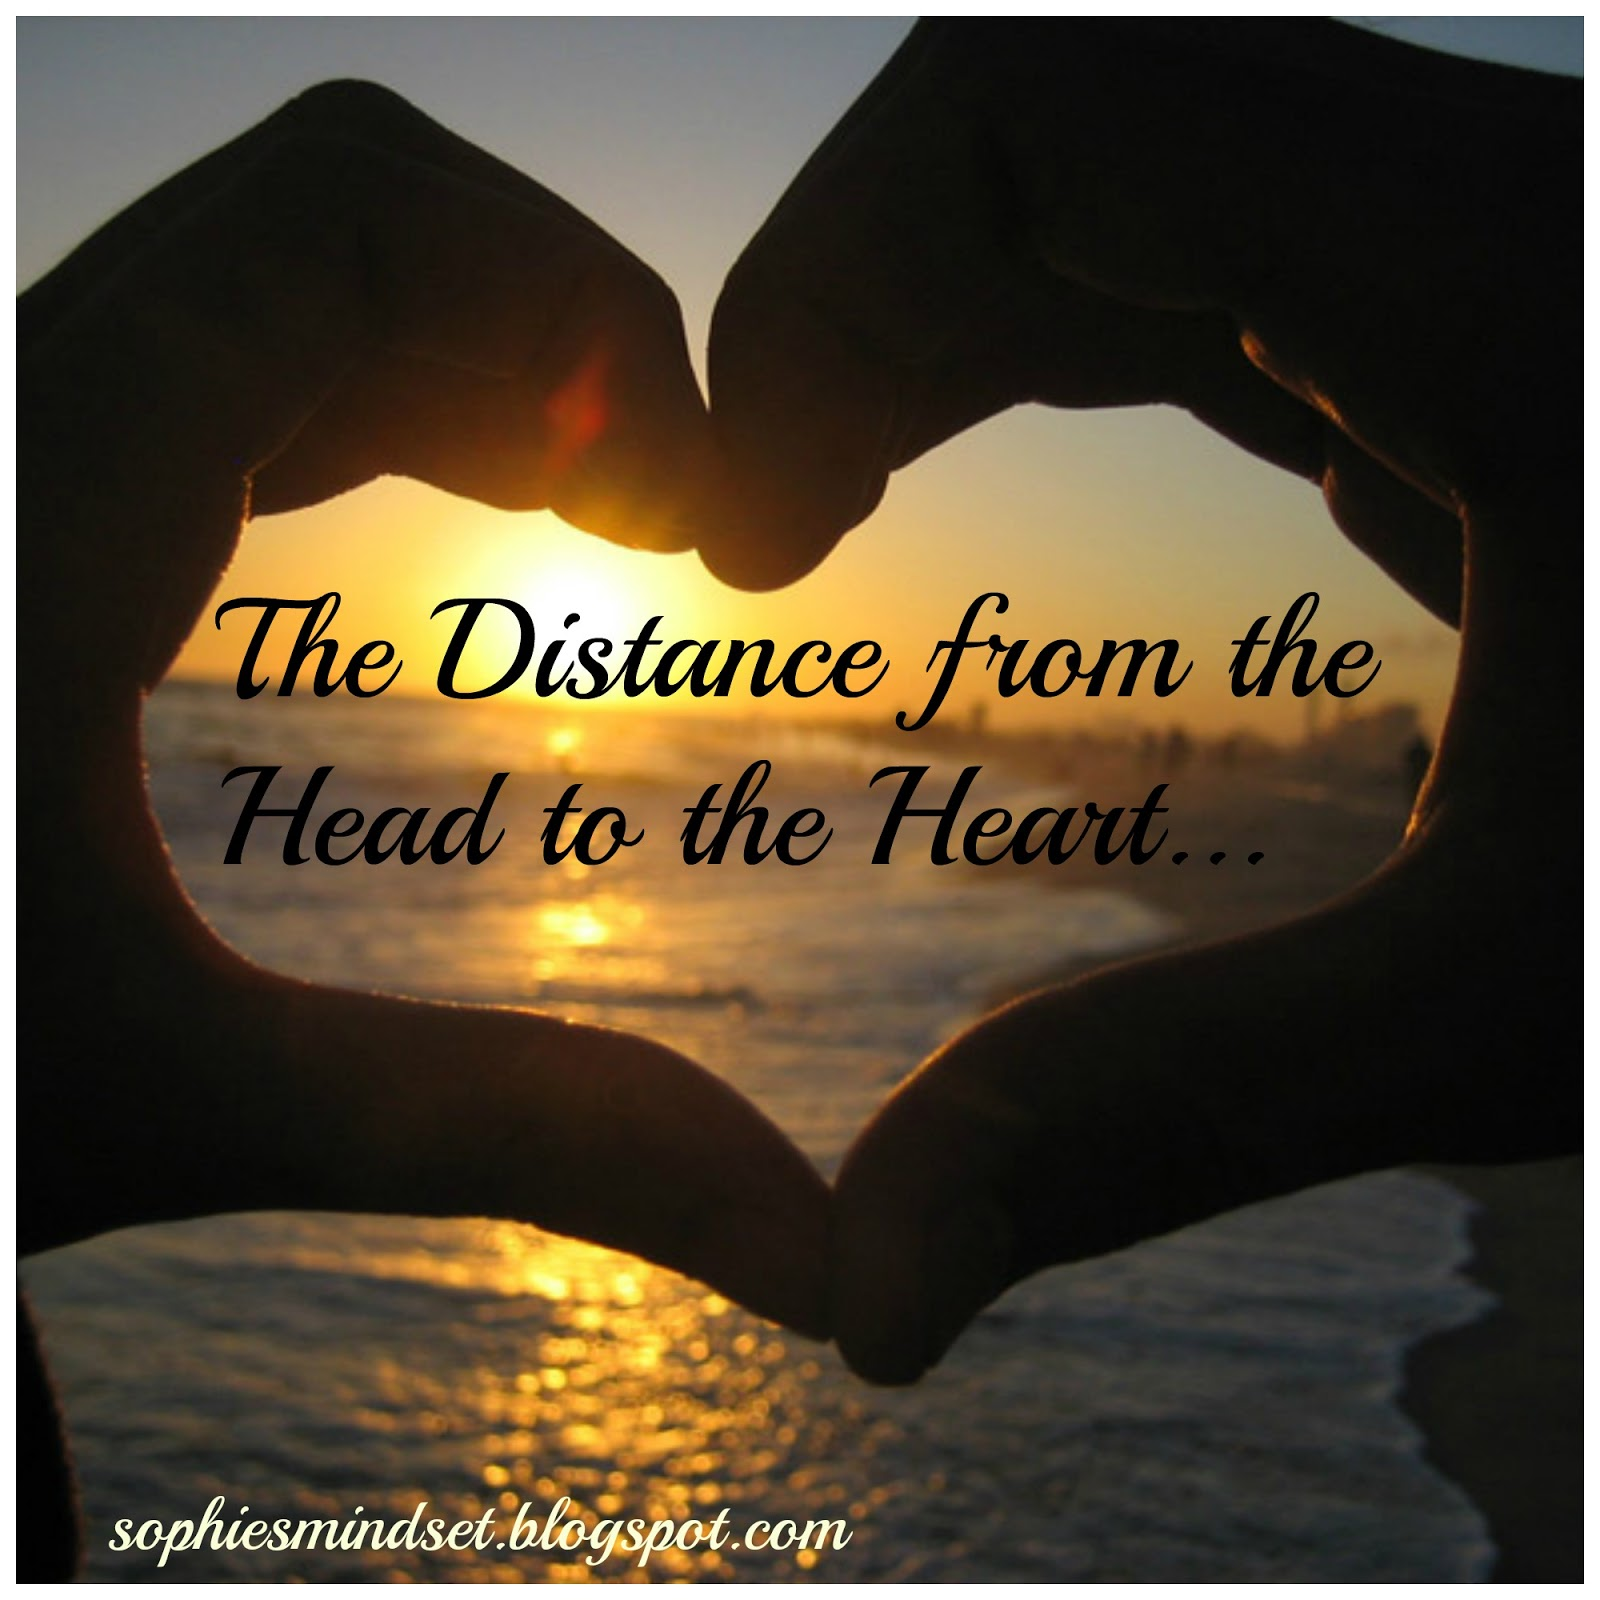 Sophie\'s Mindset: The Distance from the Head to the Heart...